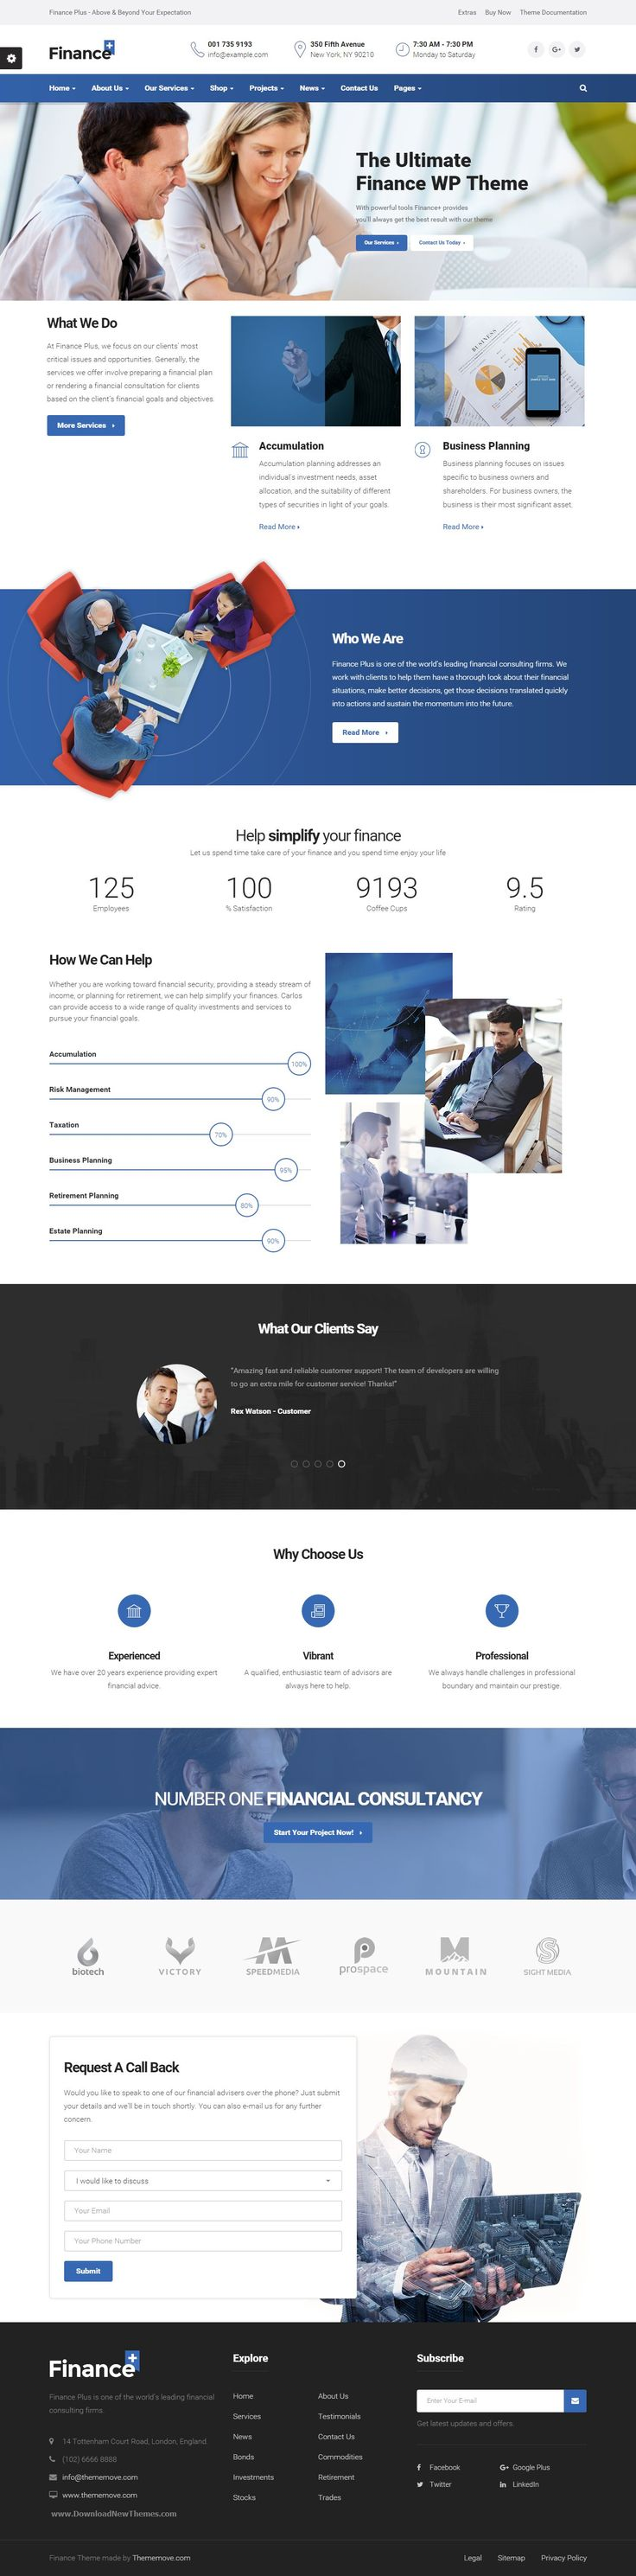 FinancePlus is a finance & business WordPress theme. It is specially designed for Business, Financial Advisor, Accountant, Law Firm, Wealth Advisor, Investment and general corporate website. This theme comes with super powerful page builder which allow you to create your site using drag drop ability. It comes with necessary features for your website such as blog, portfolio, testimonial, personnel, etc. #Financial #corporate #WordPress #Theme